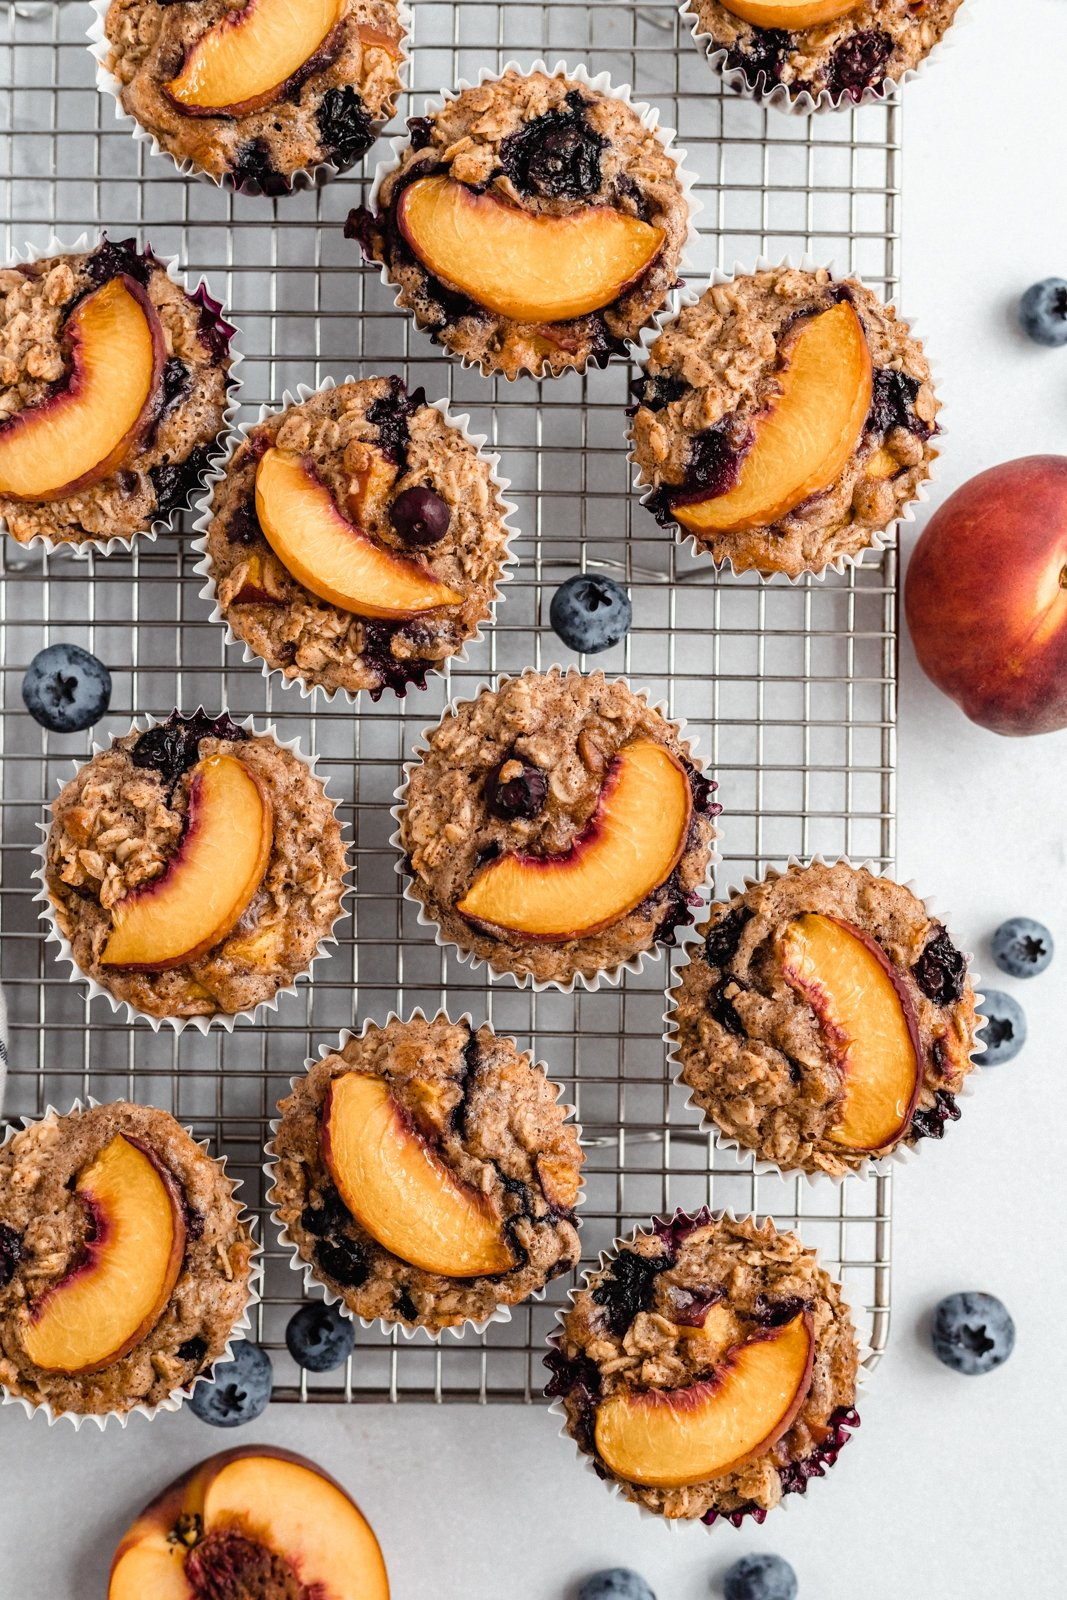 blueberry baked oatmeal cups topped with peach slices on a wire rack